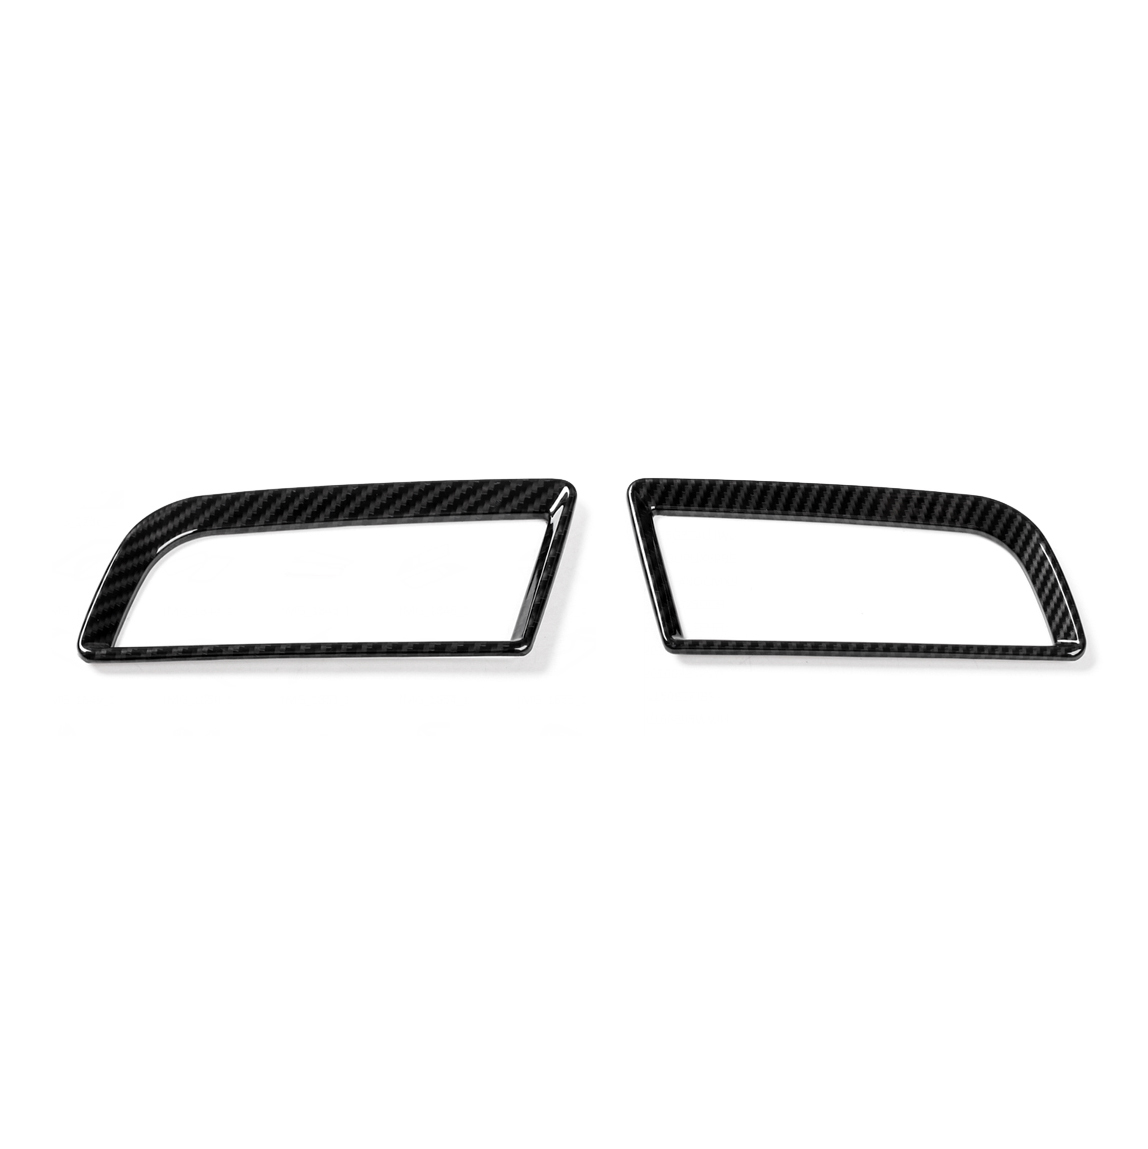 Abs Dashboard Side Air Condition Vent Cover Ring Trim For